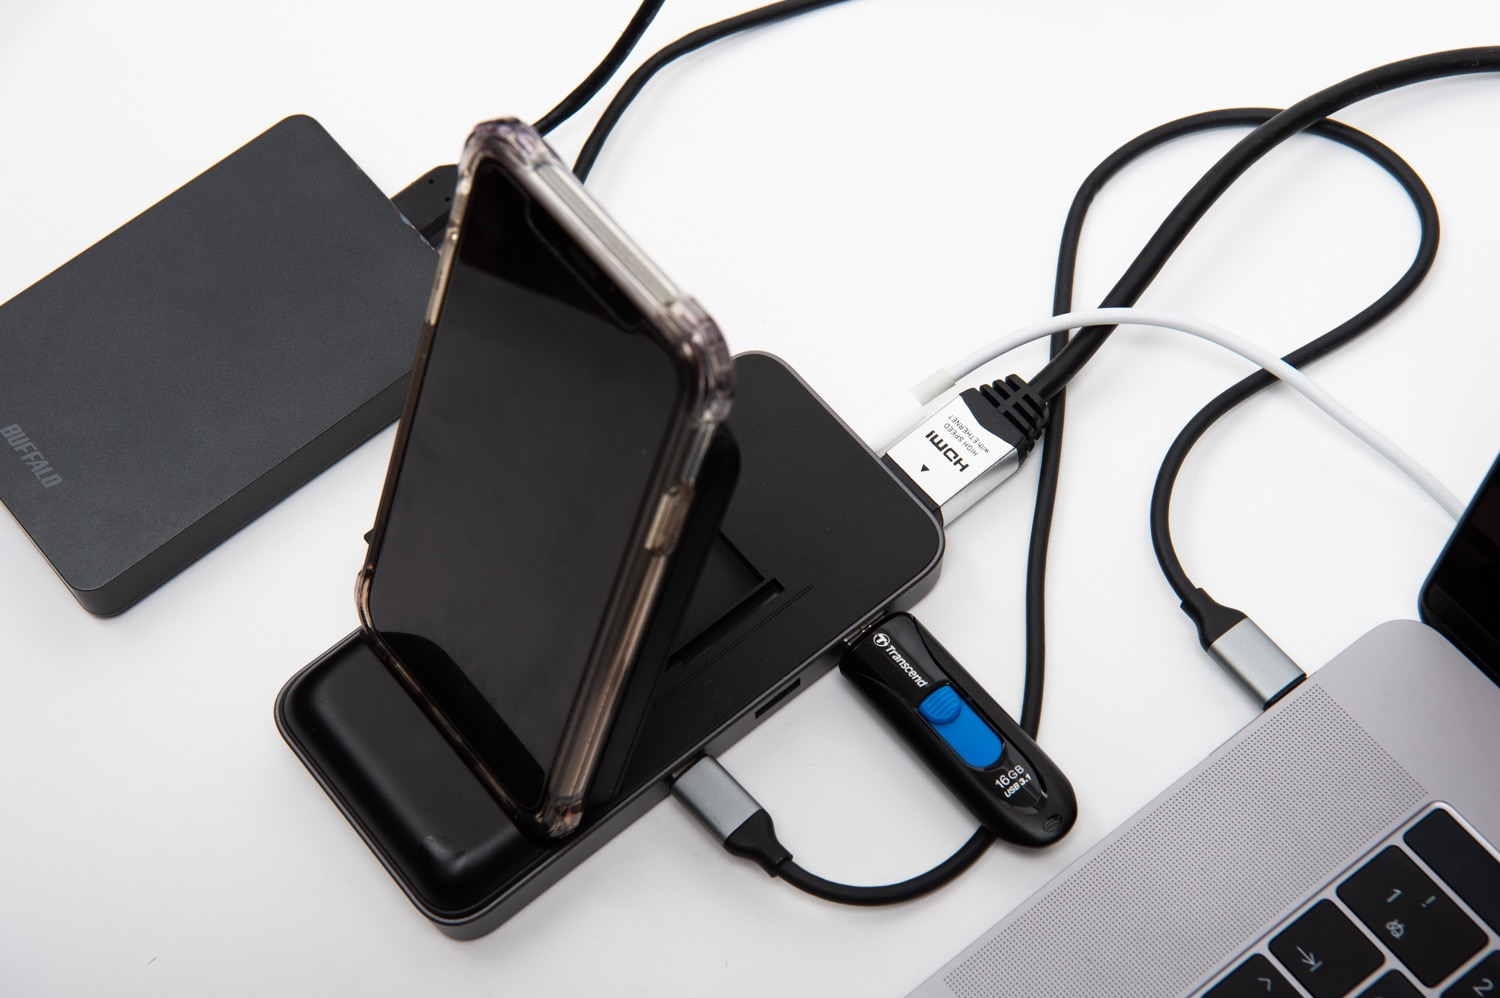 iPhoneの充電